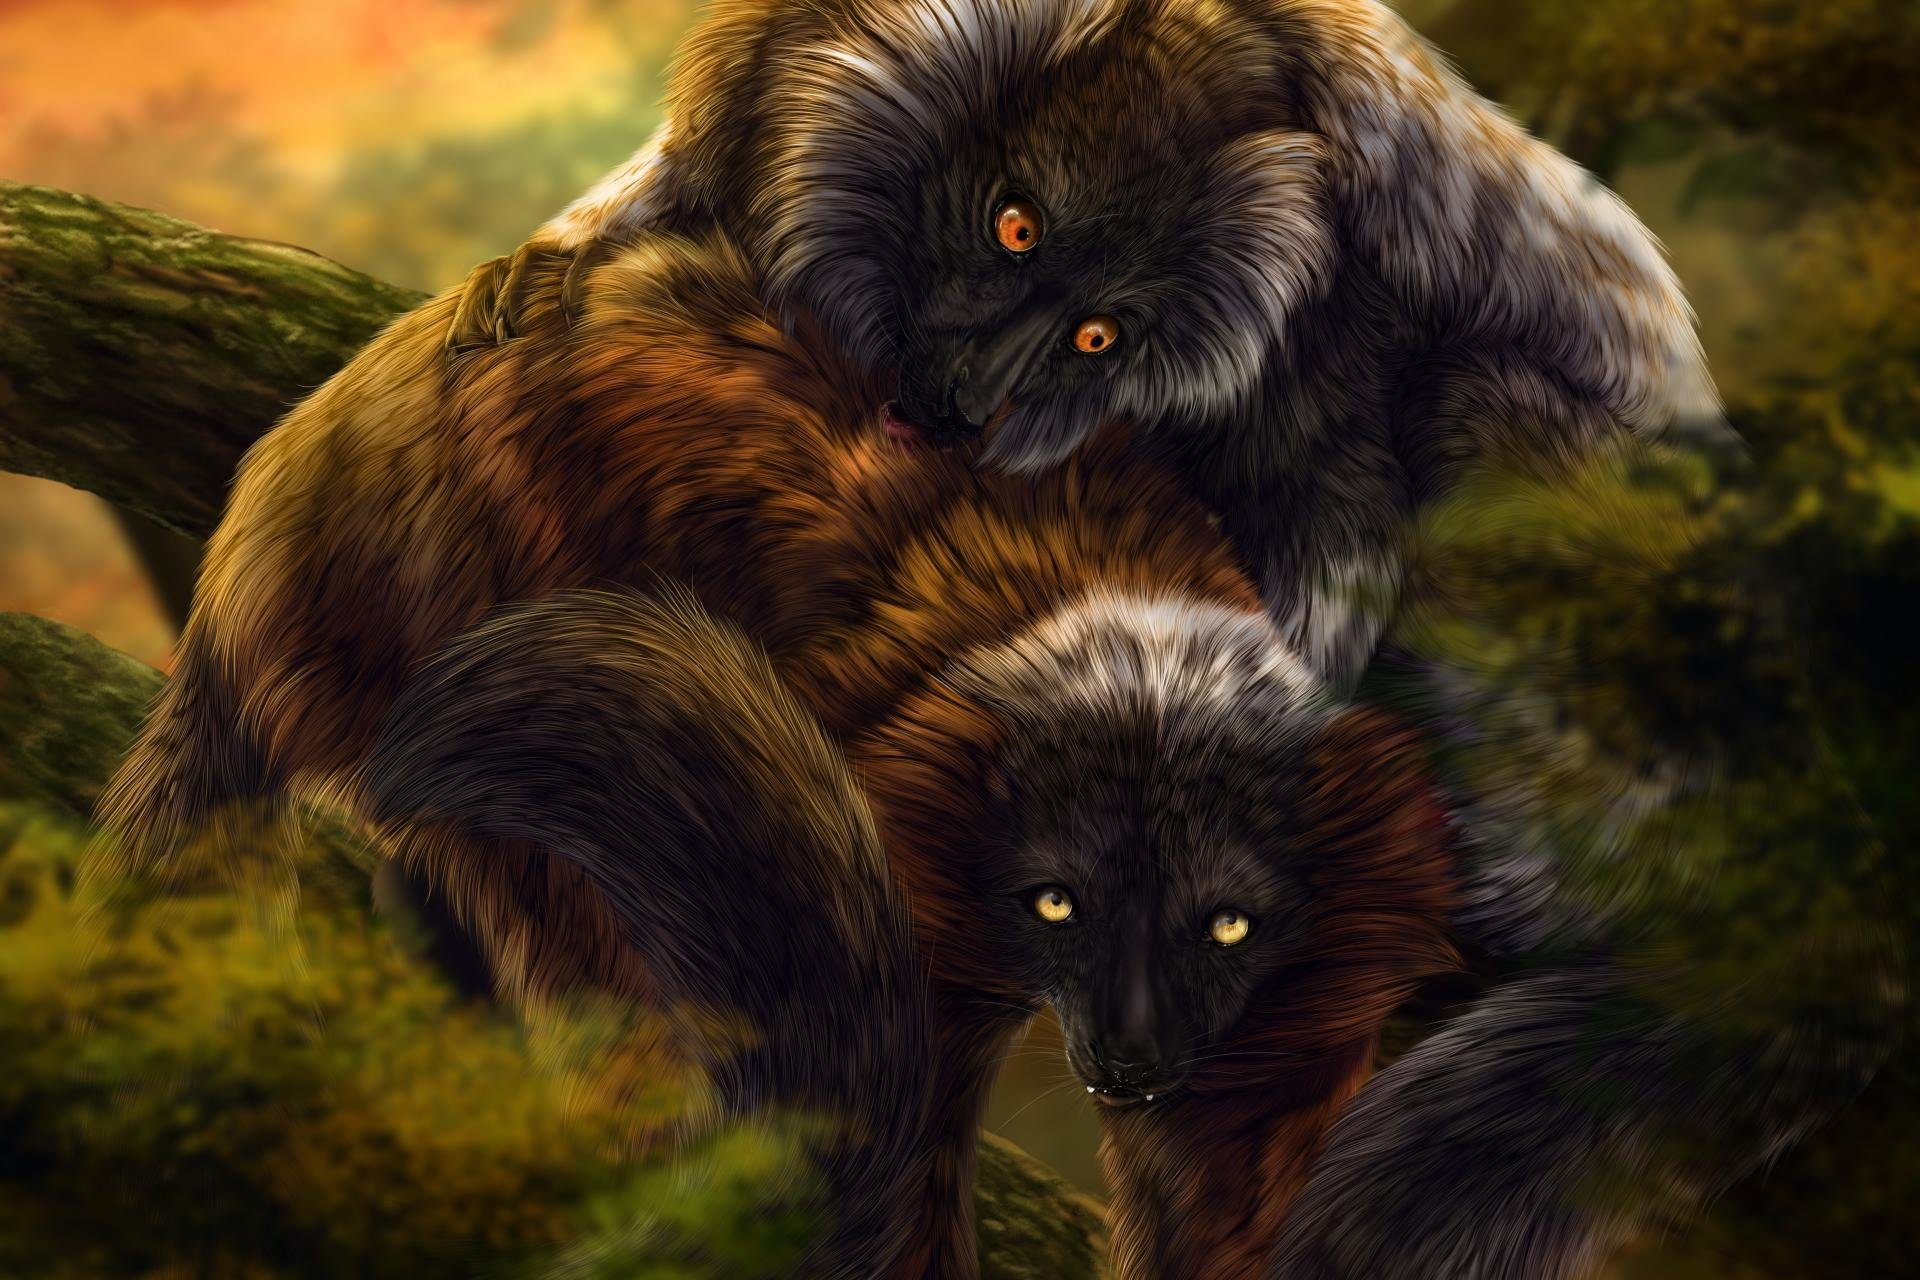 Download hd 1920x1280 Lemur PC background ID:53198 for free